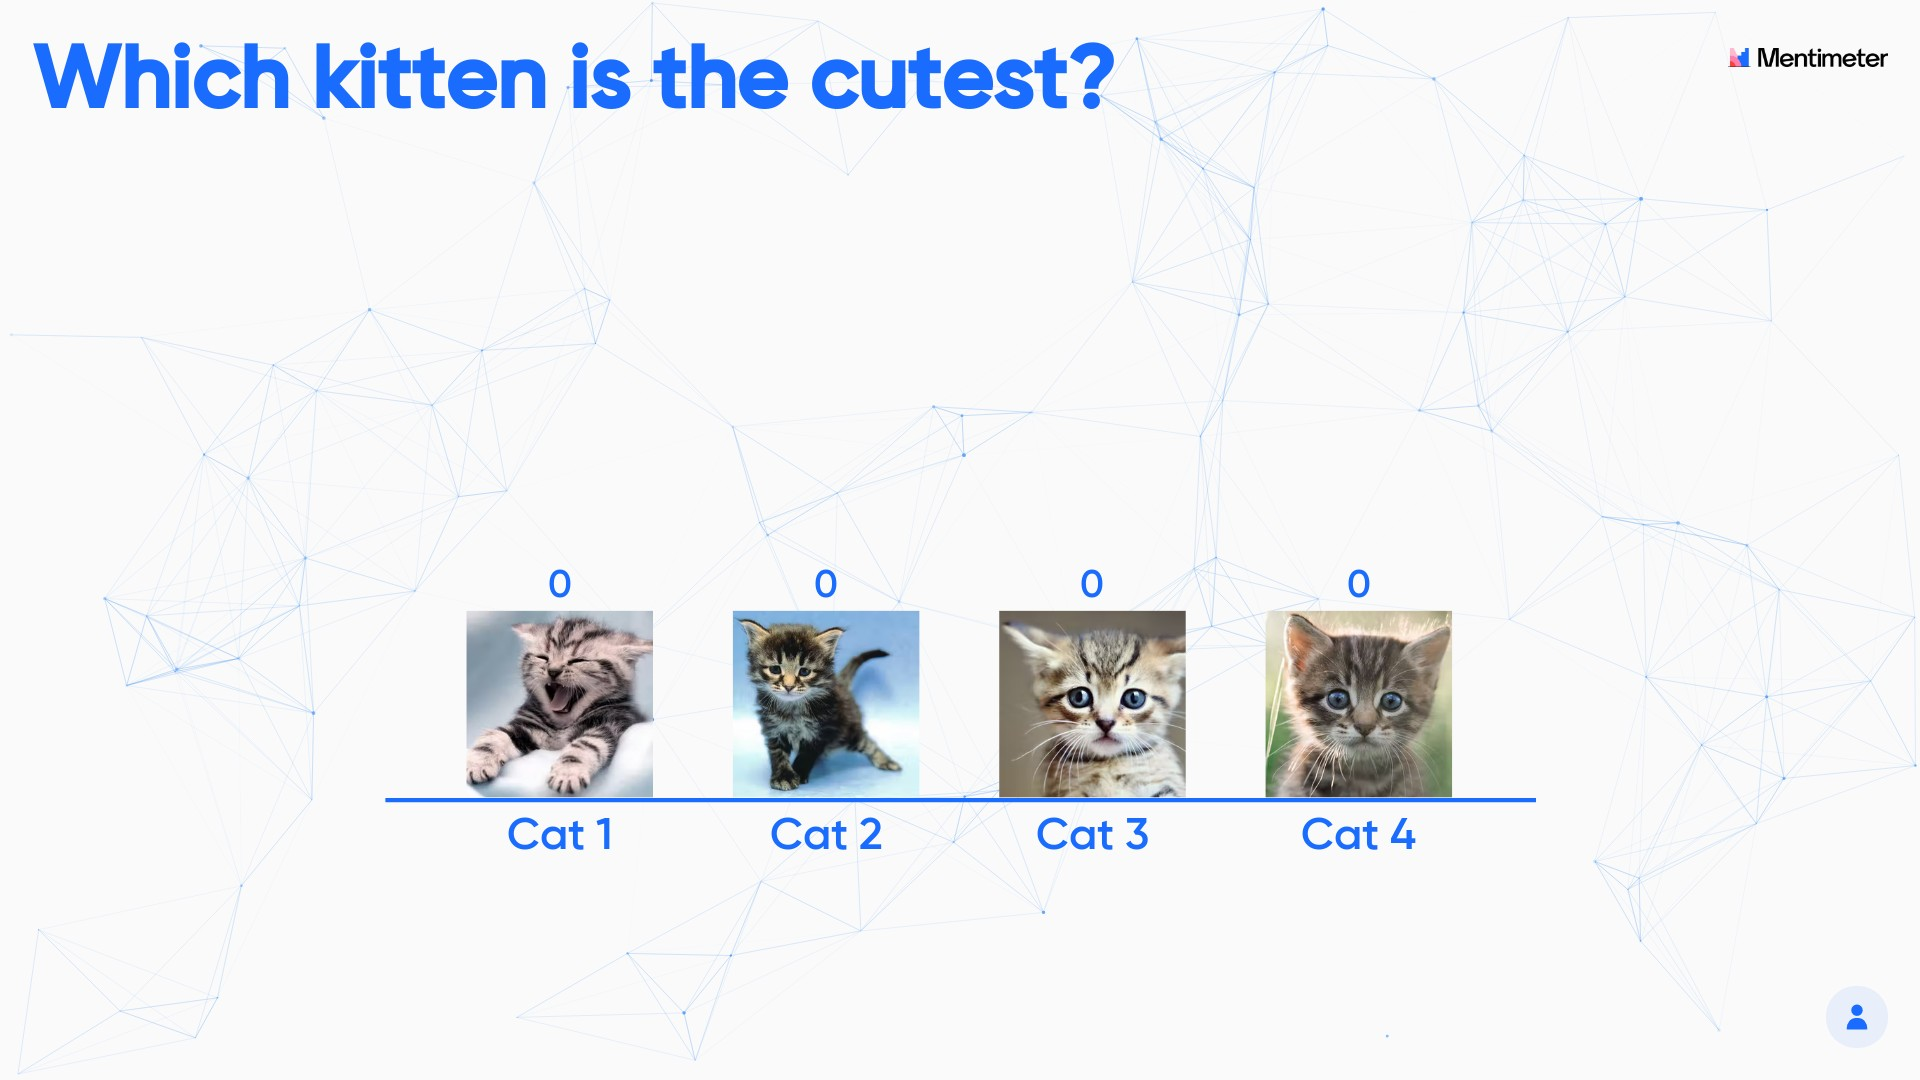 Vote for the cutest kitten